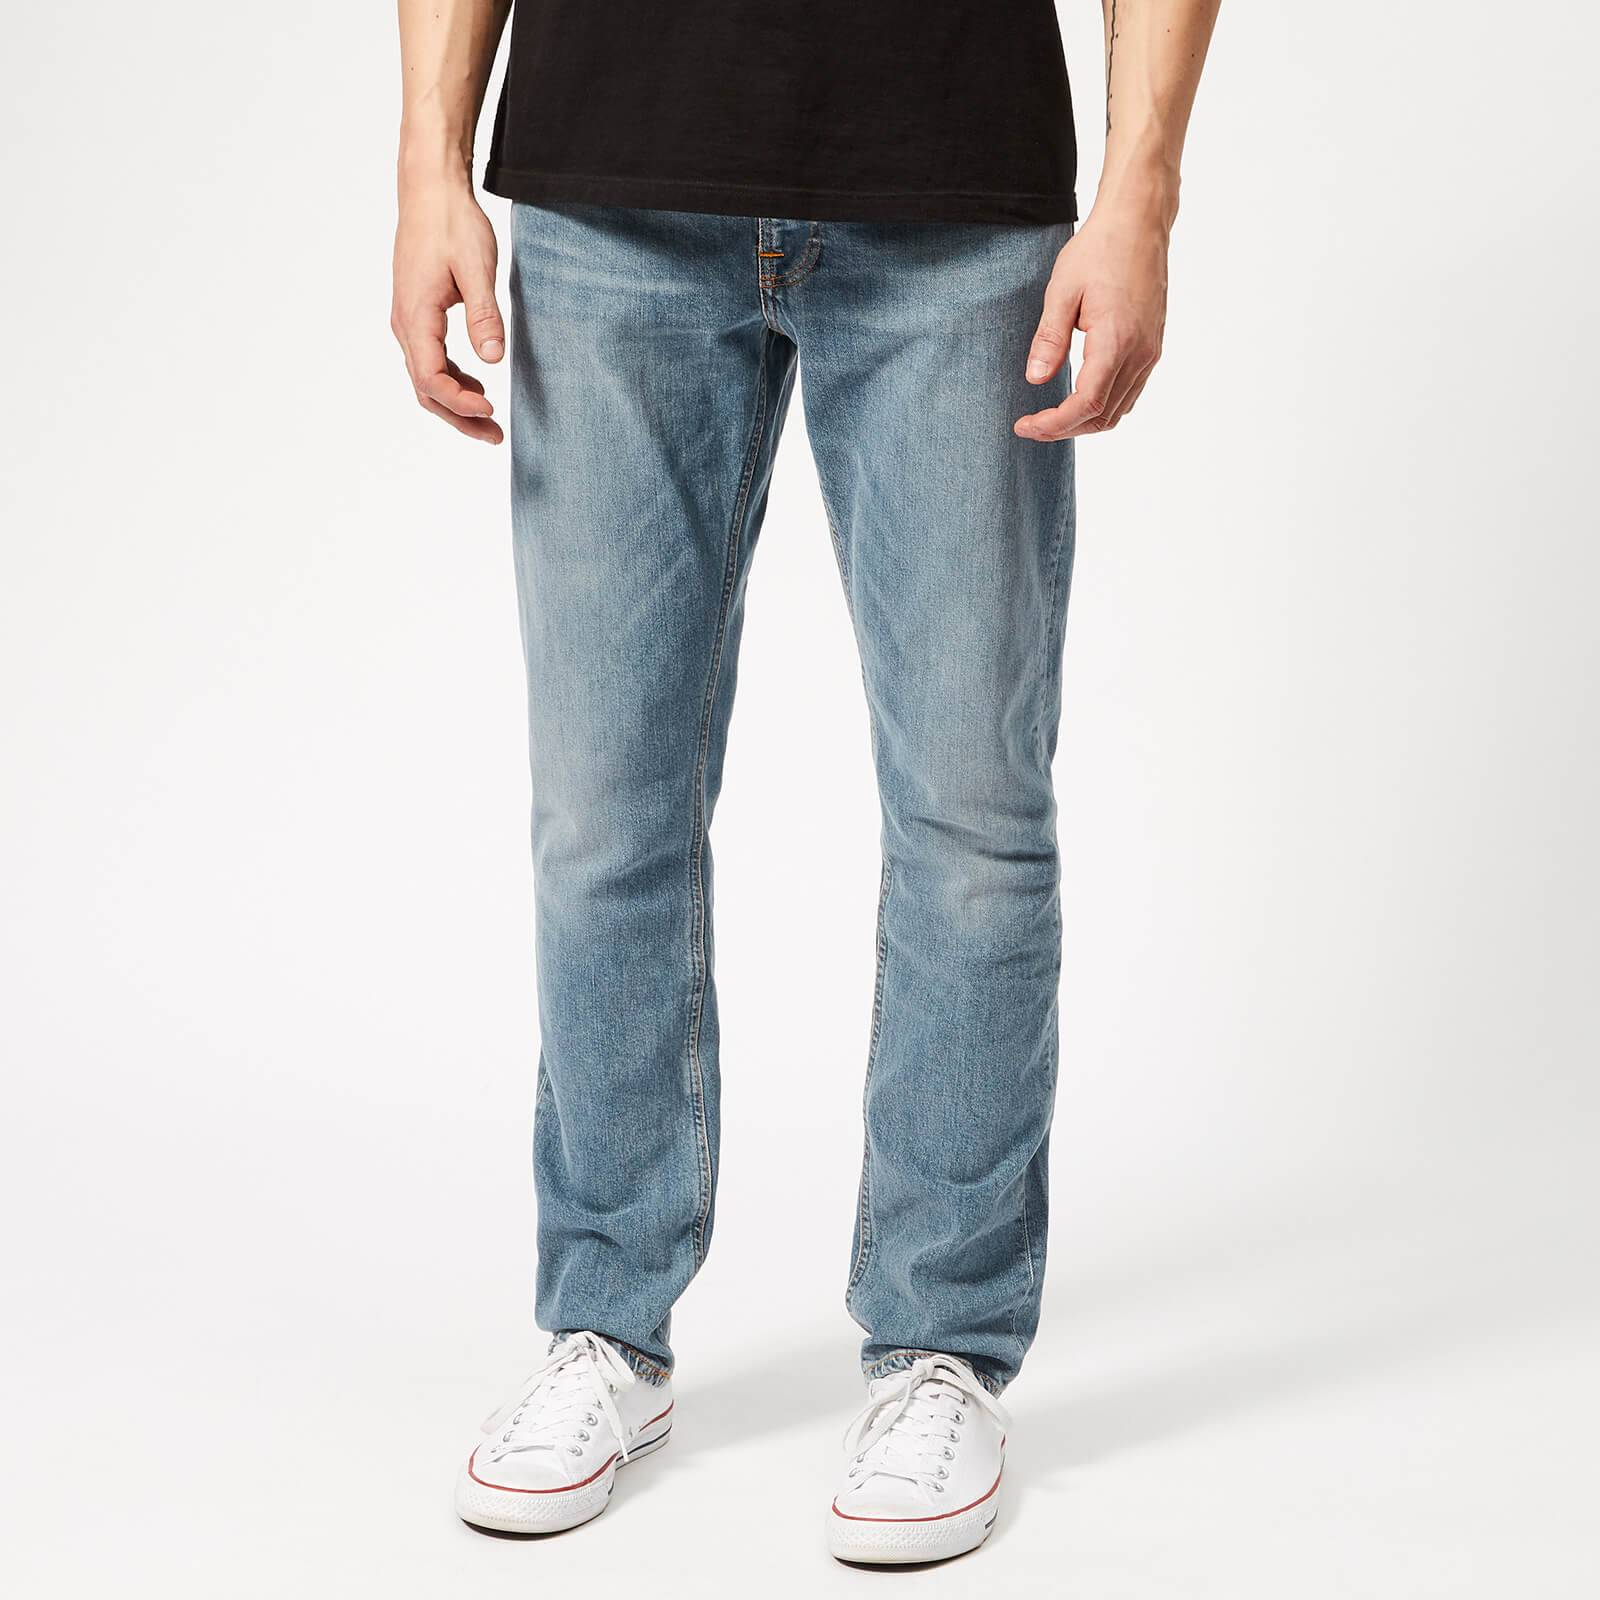 Nudie Jeans Men's Lean Dean Tapered Jeans - Mid Stone Comfort - W34/L34 - Blue